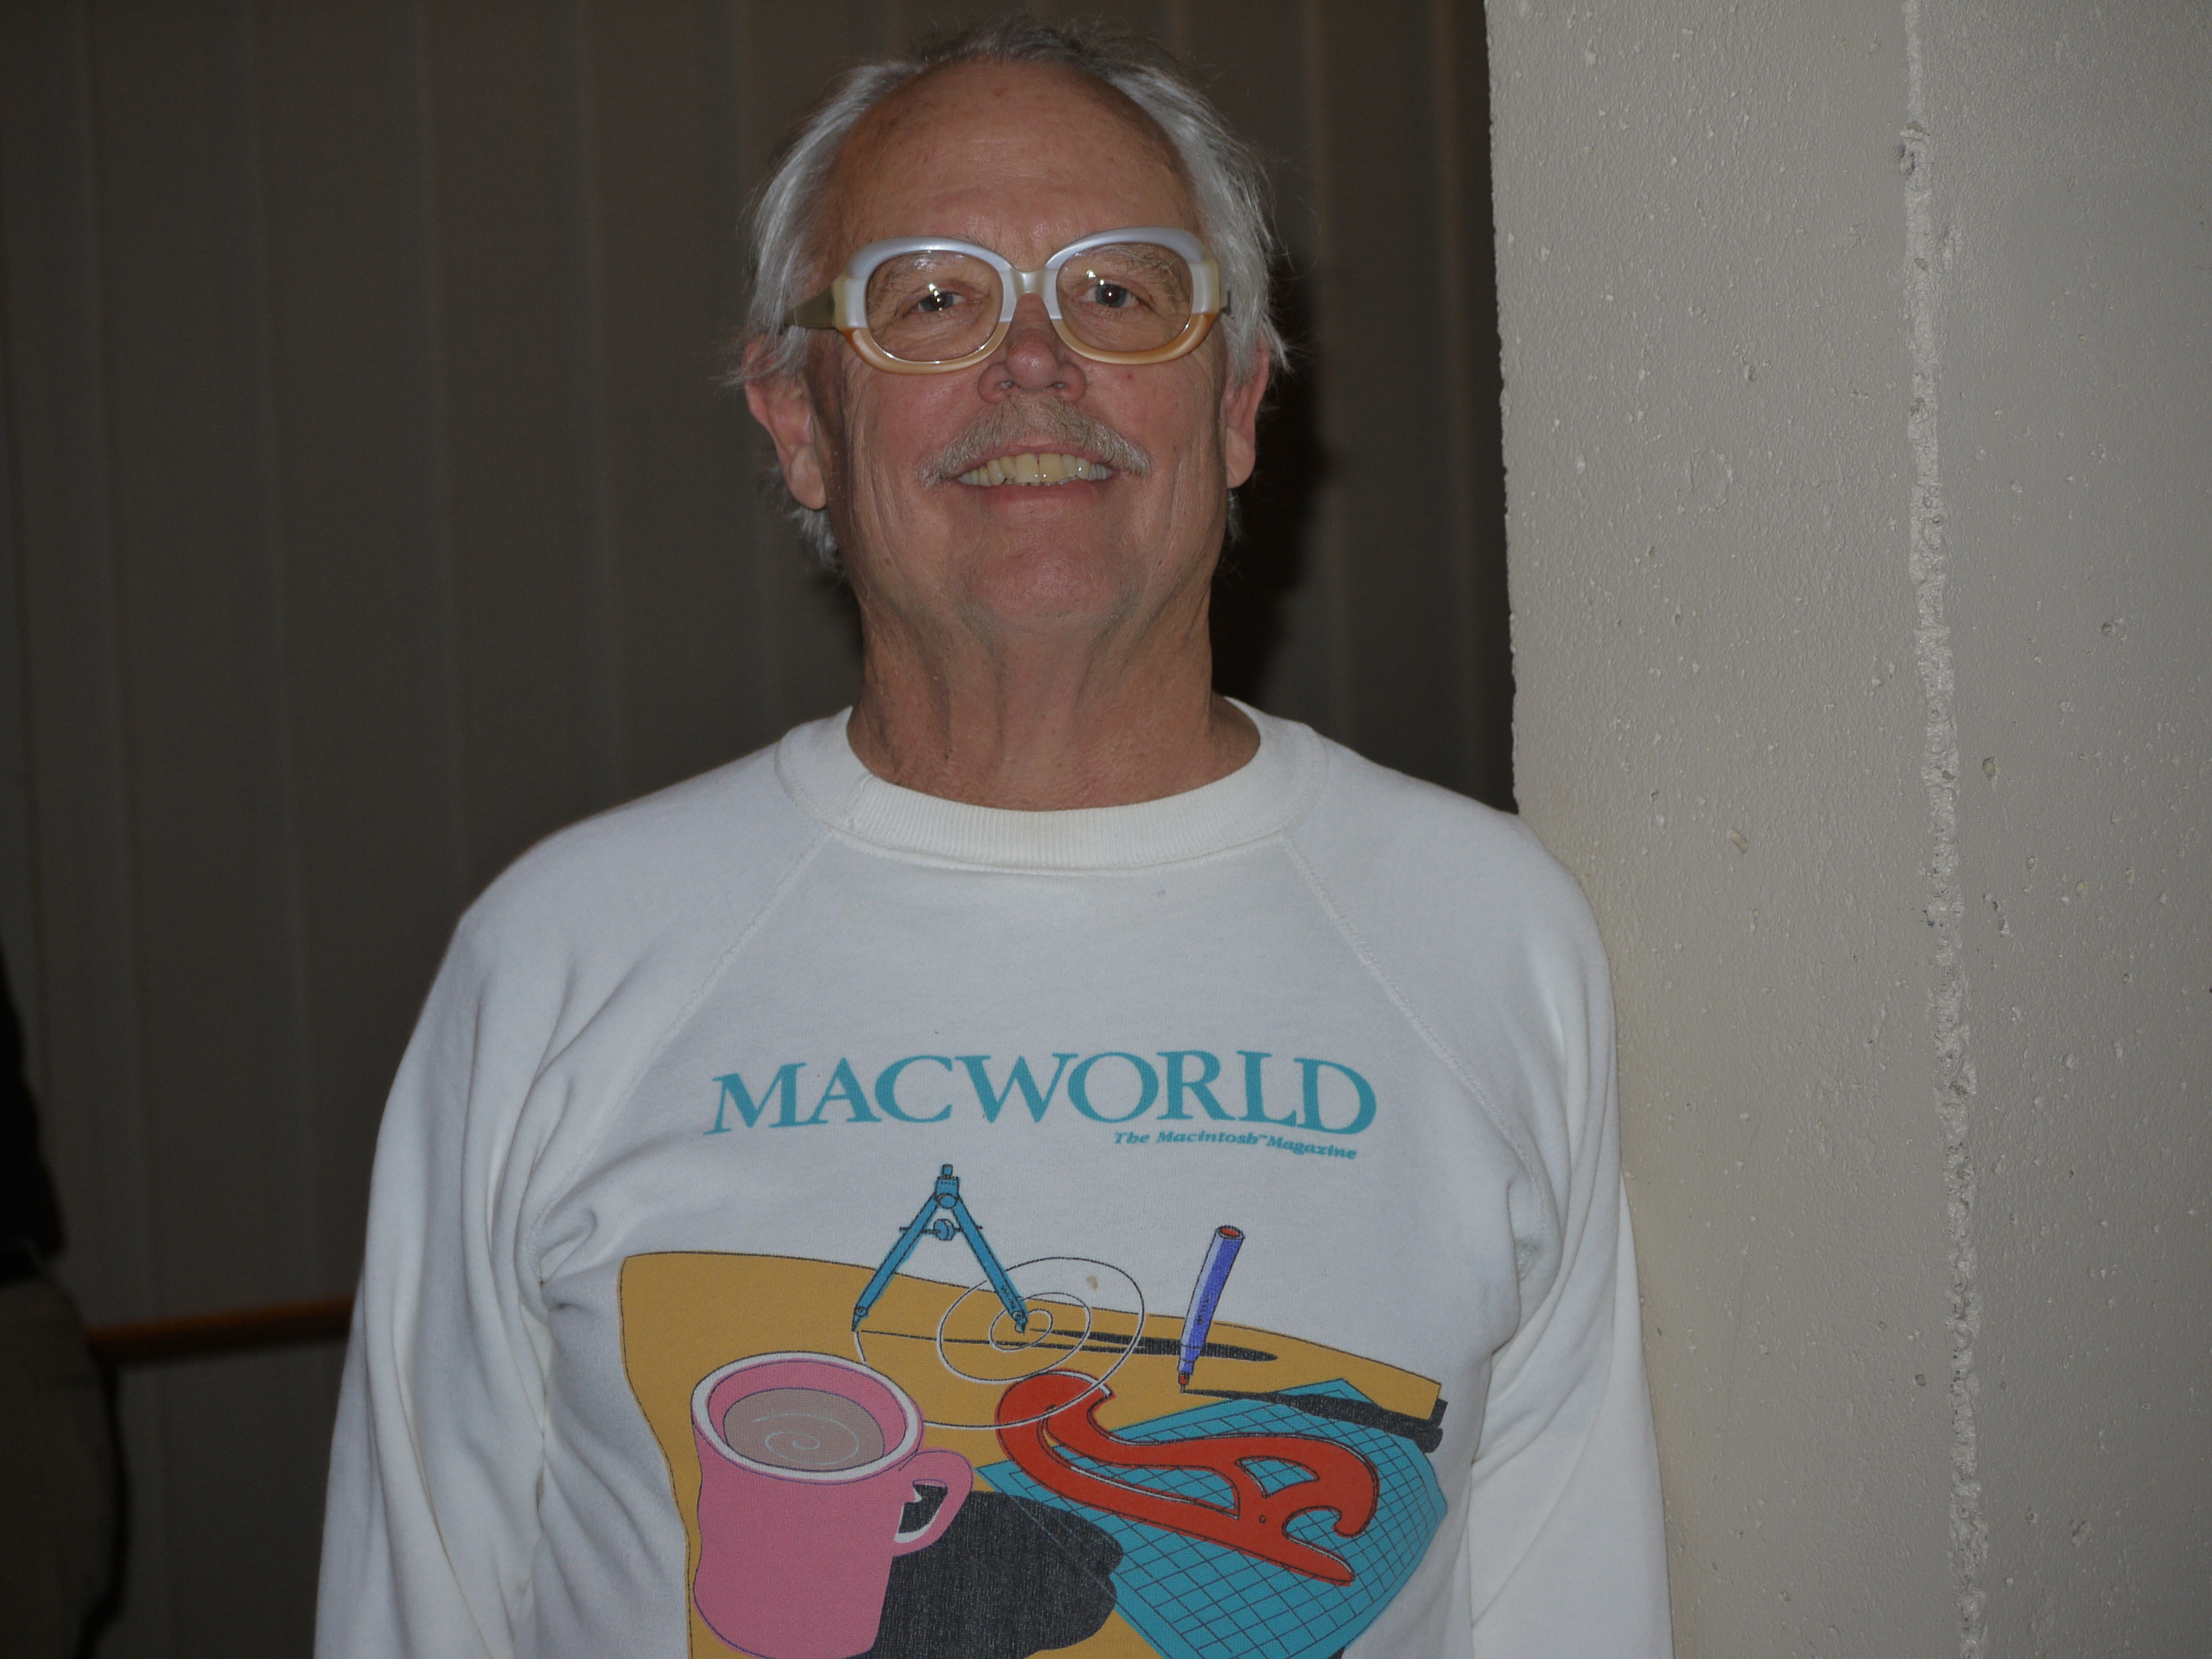 Macworld founder David Bunnell